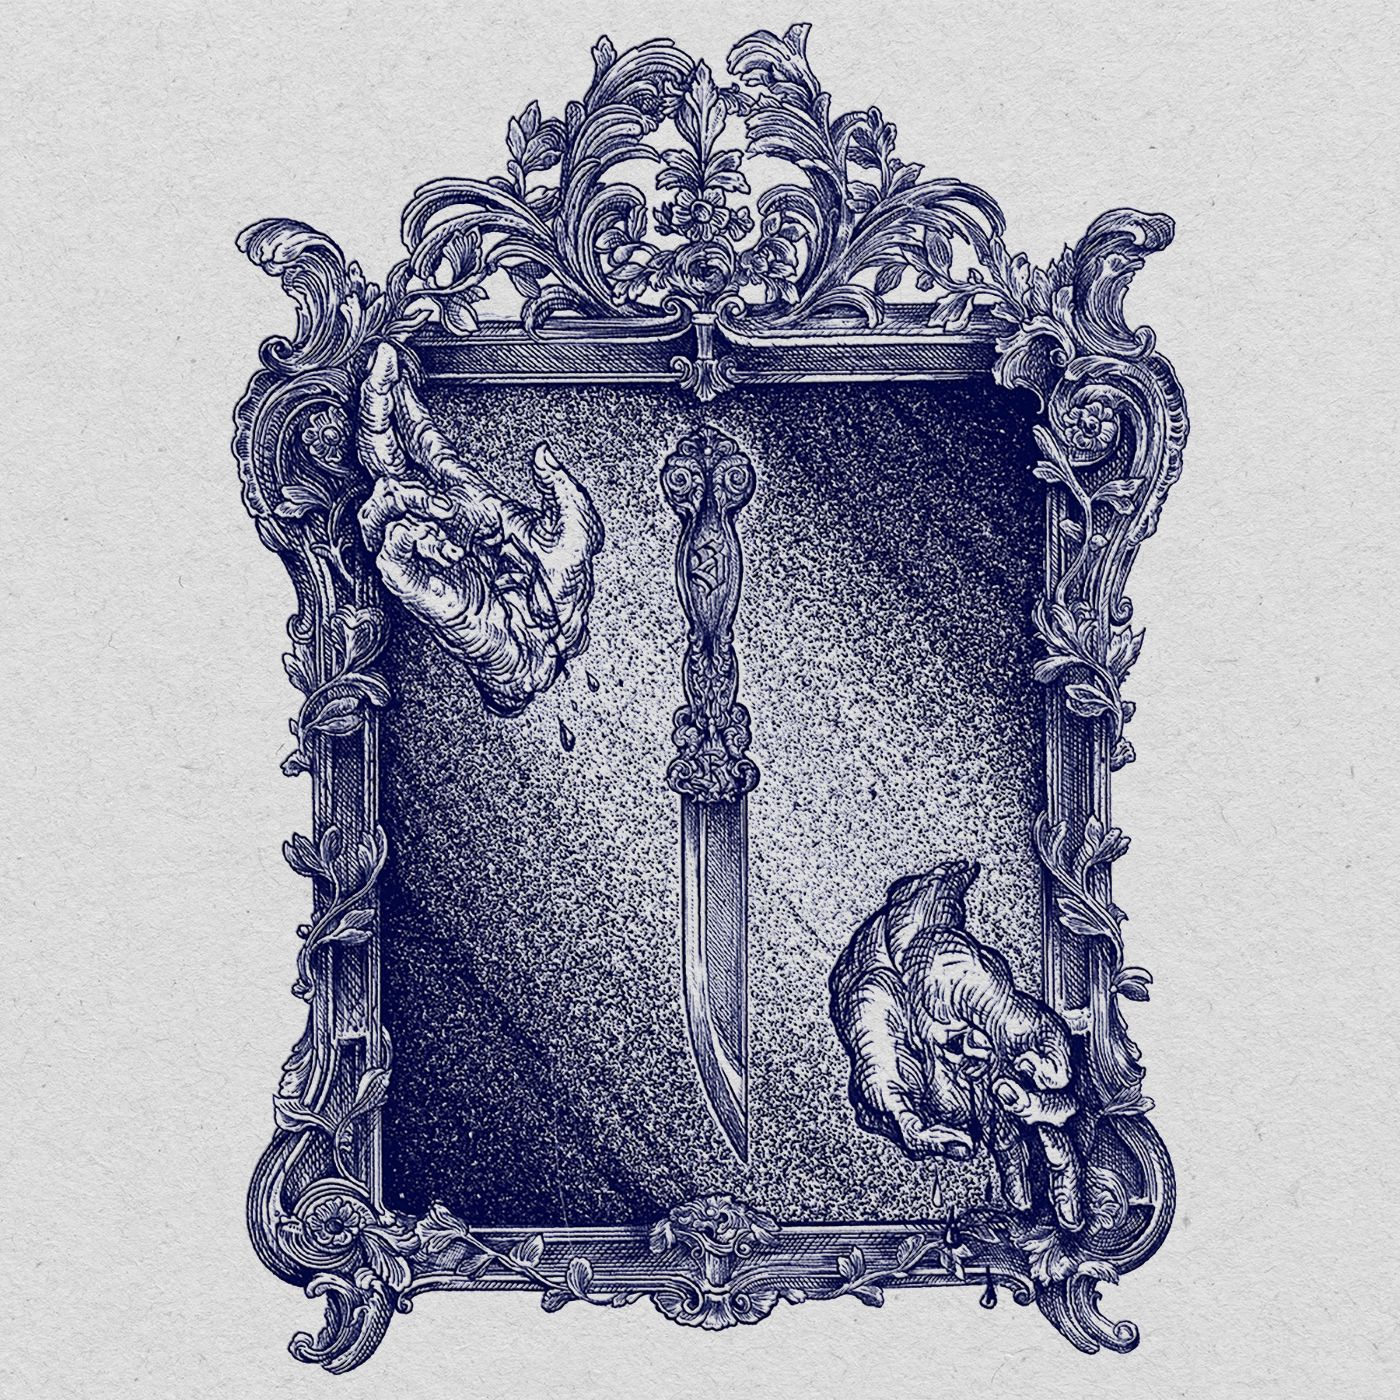 Review for Silver Knife - Unyielding / Unseeing